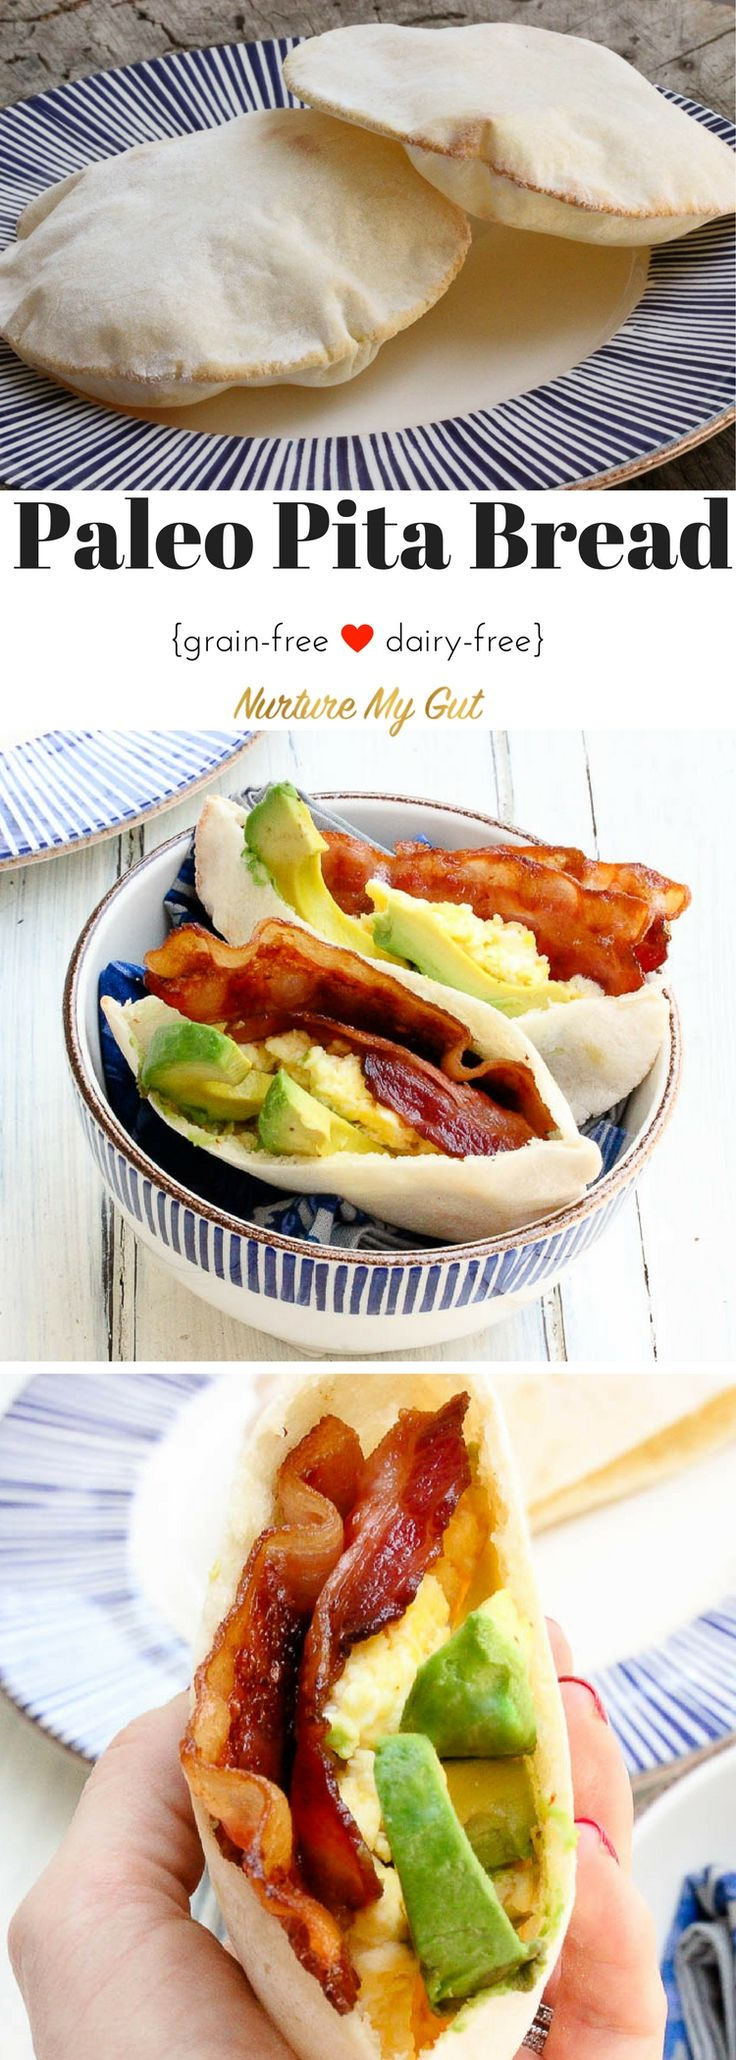 Craving Pita Bread? Look no further!  These pitas puff up perfectly in the oven and are an insanely good breakfast when stuffed